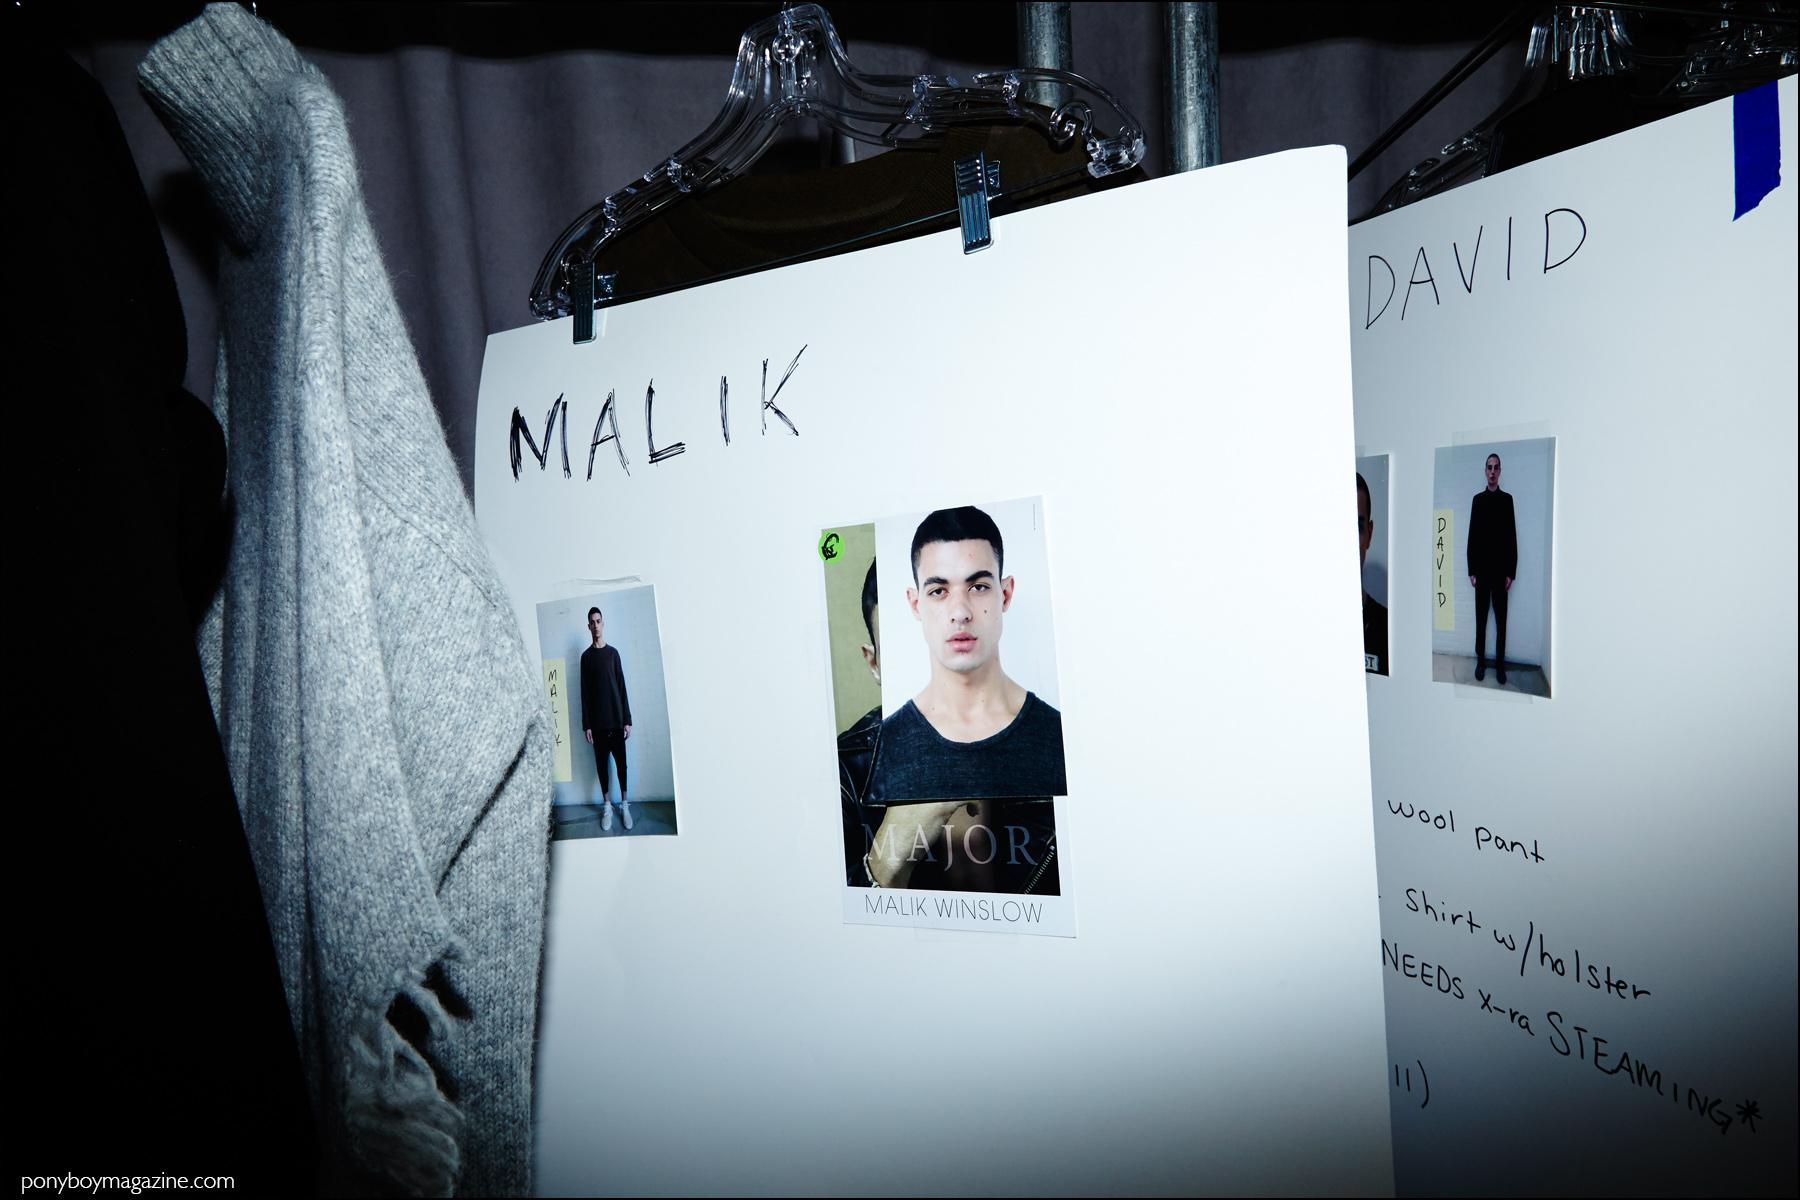 Dressing card photographed backstage for male model Malik Winslow with Major Models, Stampd F/W16 menswear. Photograph by Alexander Thompson for Ponyboy magazine NY.